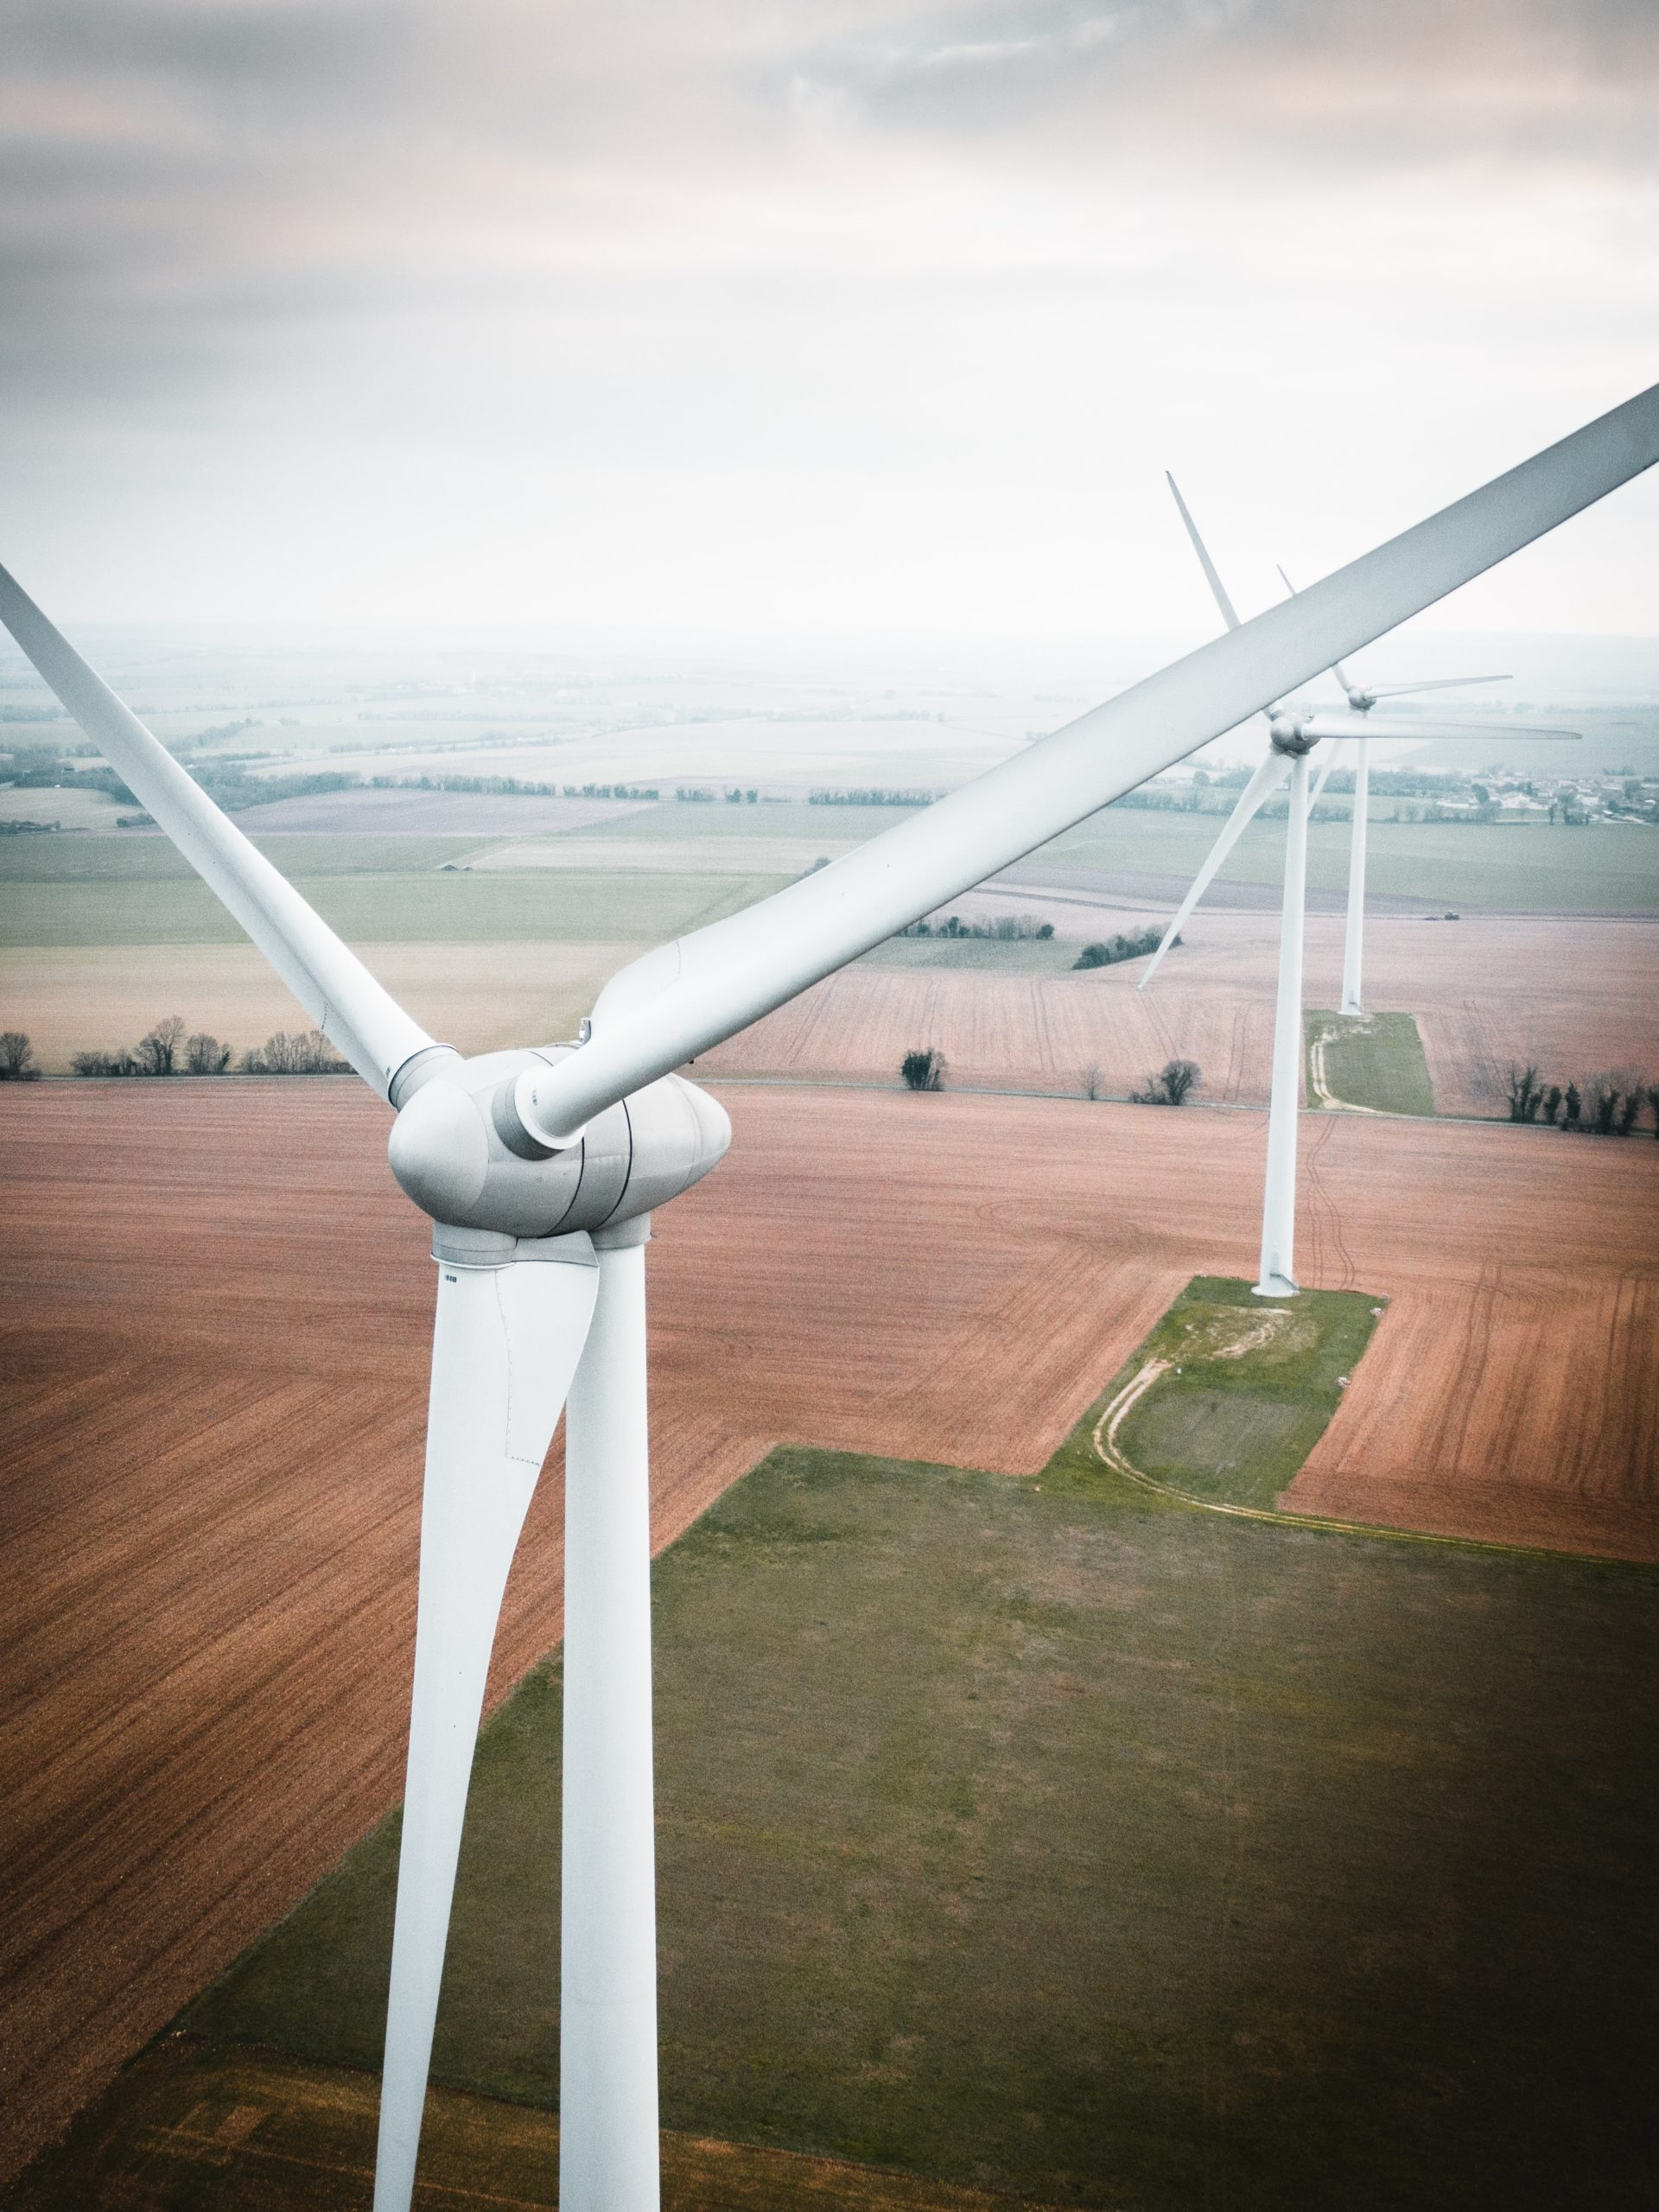 Picture of multiple windmill in a grassy fields